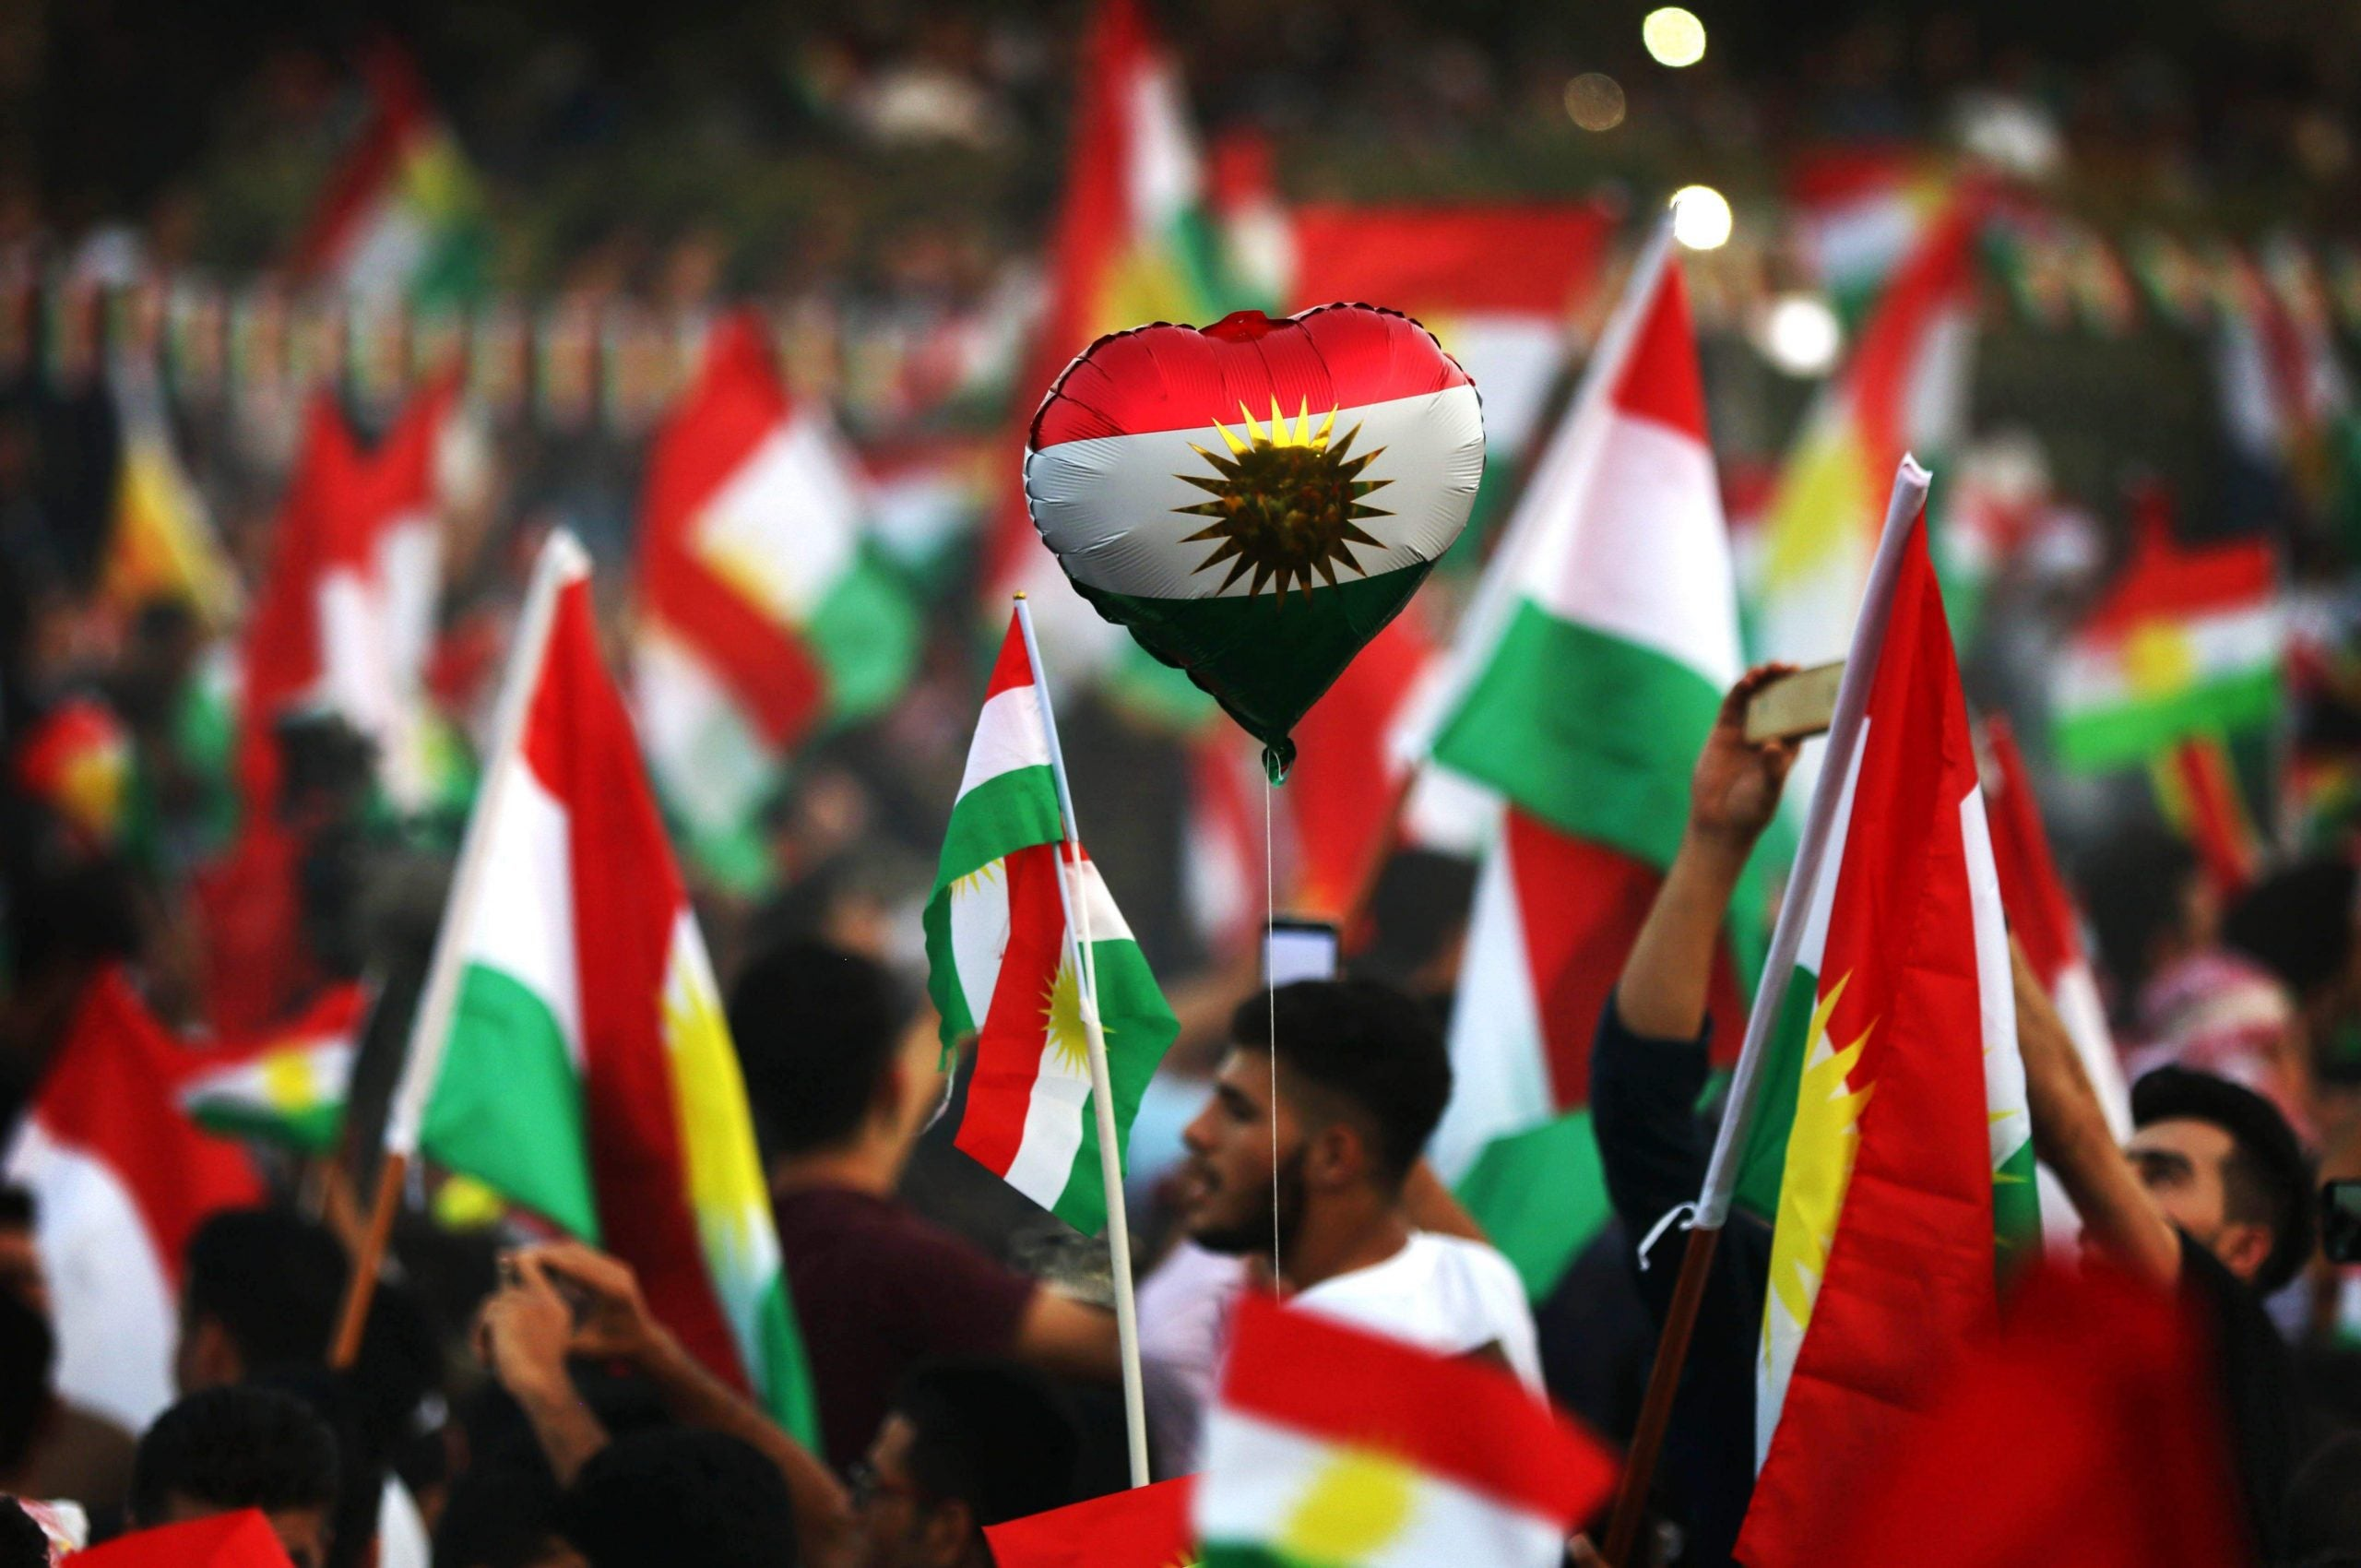 The Kurds' last stand: how Iraq quashed hopes of secession